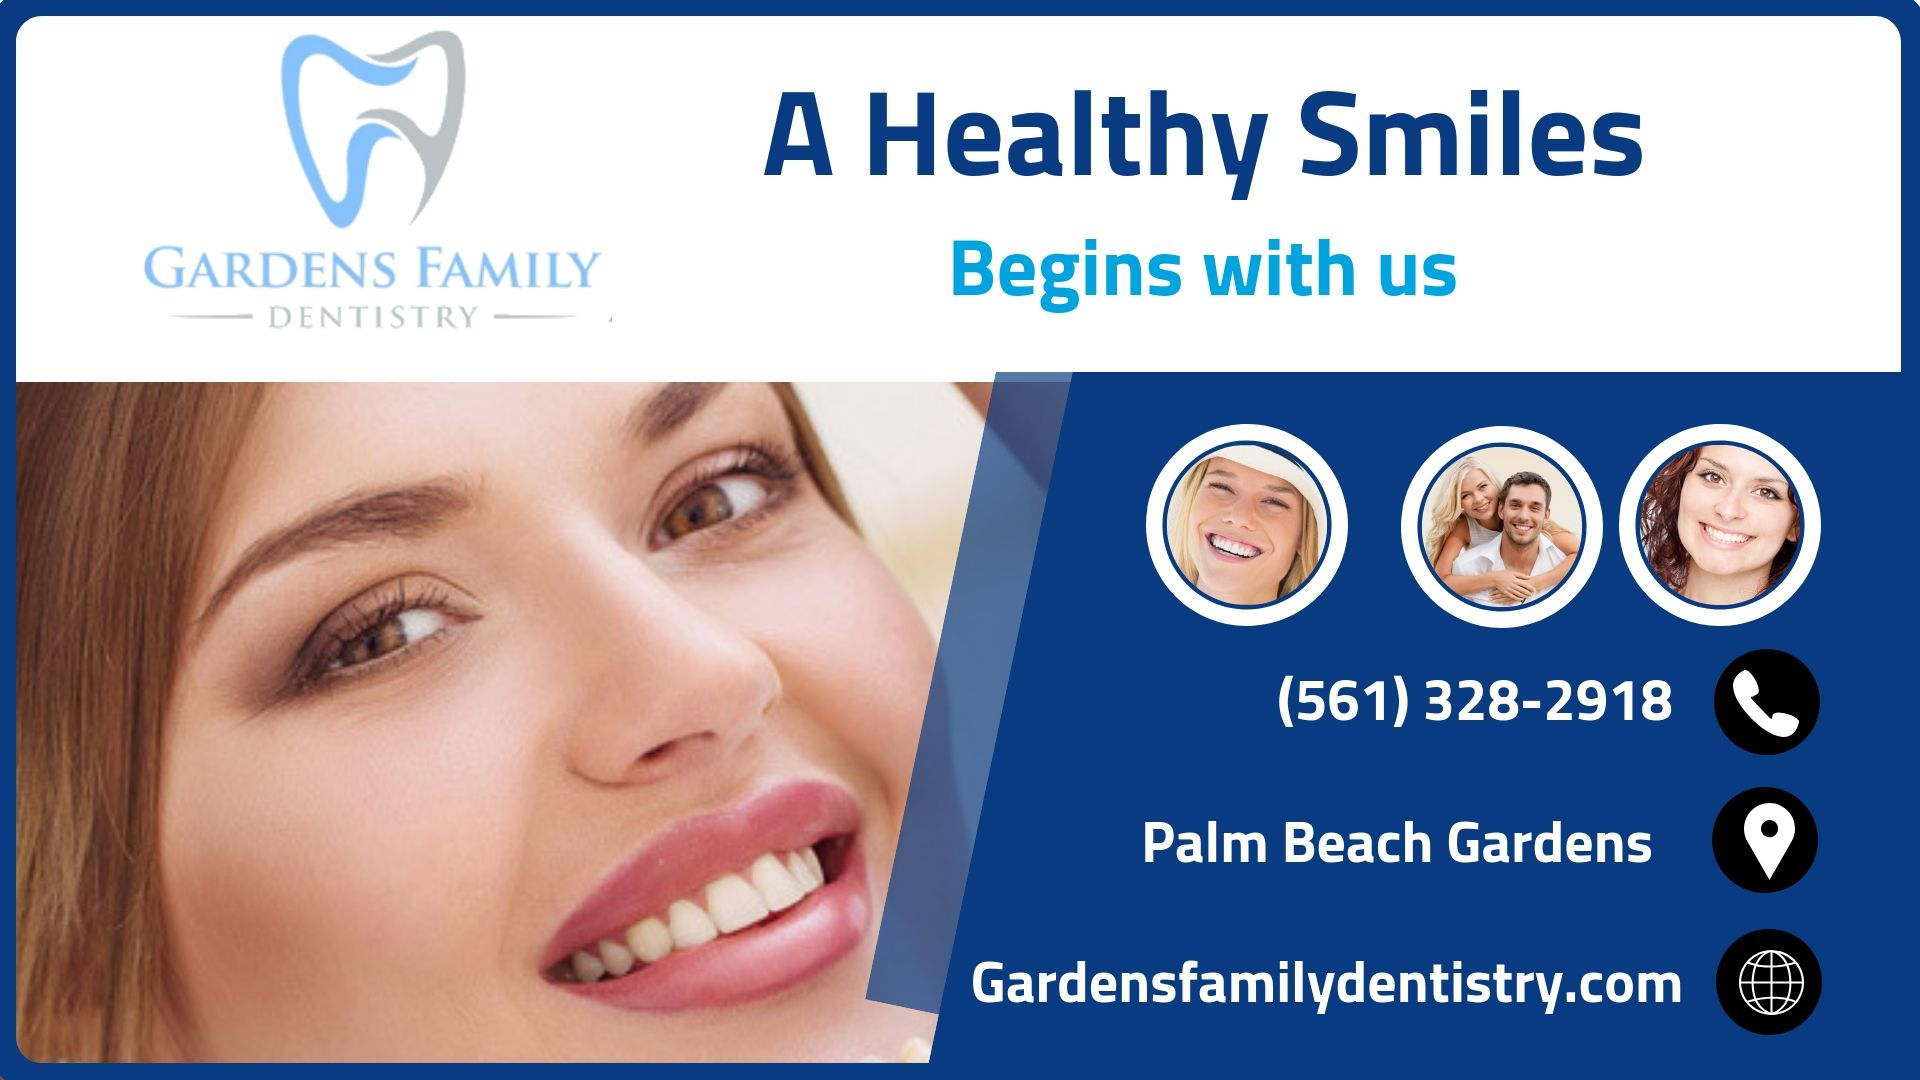 If you are looking for the best cosmetic dentists in Palm